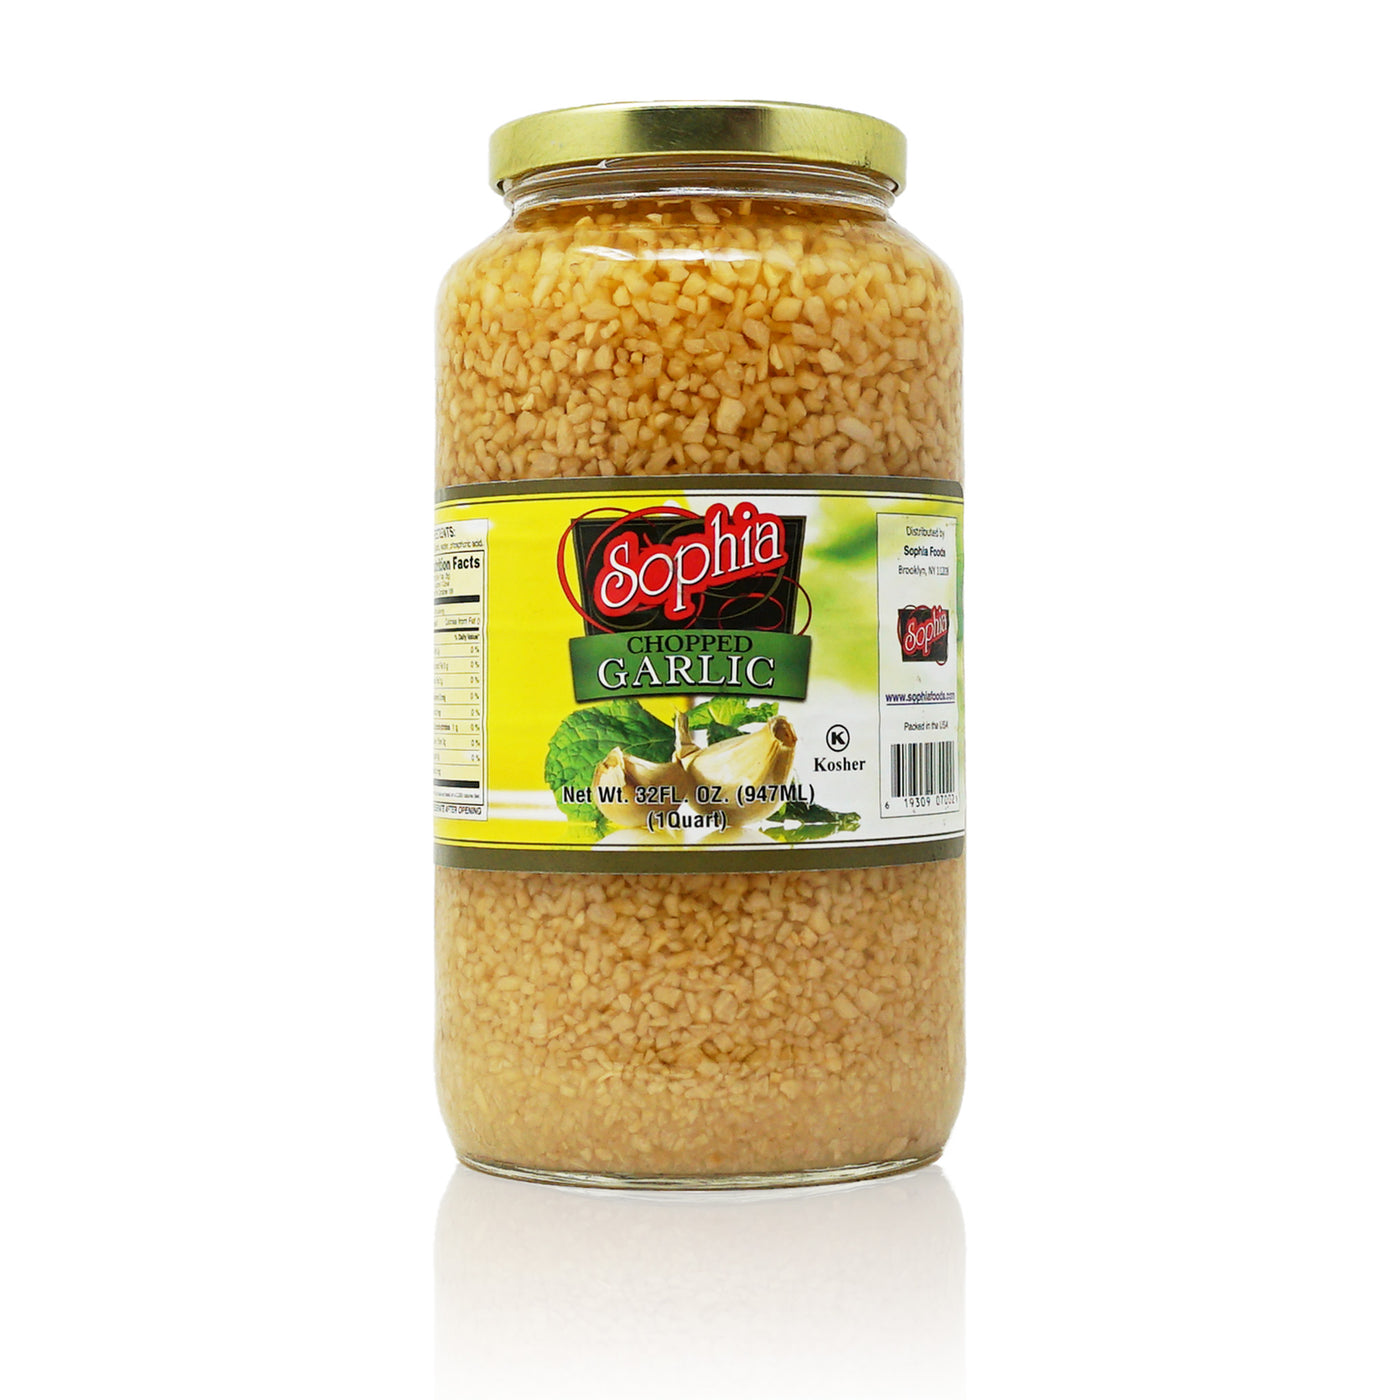 Sophia Garlic - Chopped 32oz